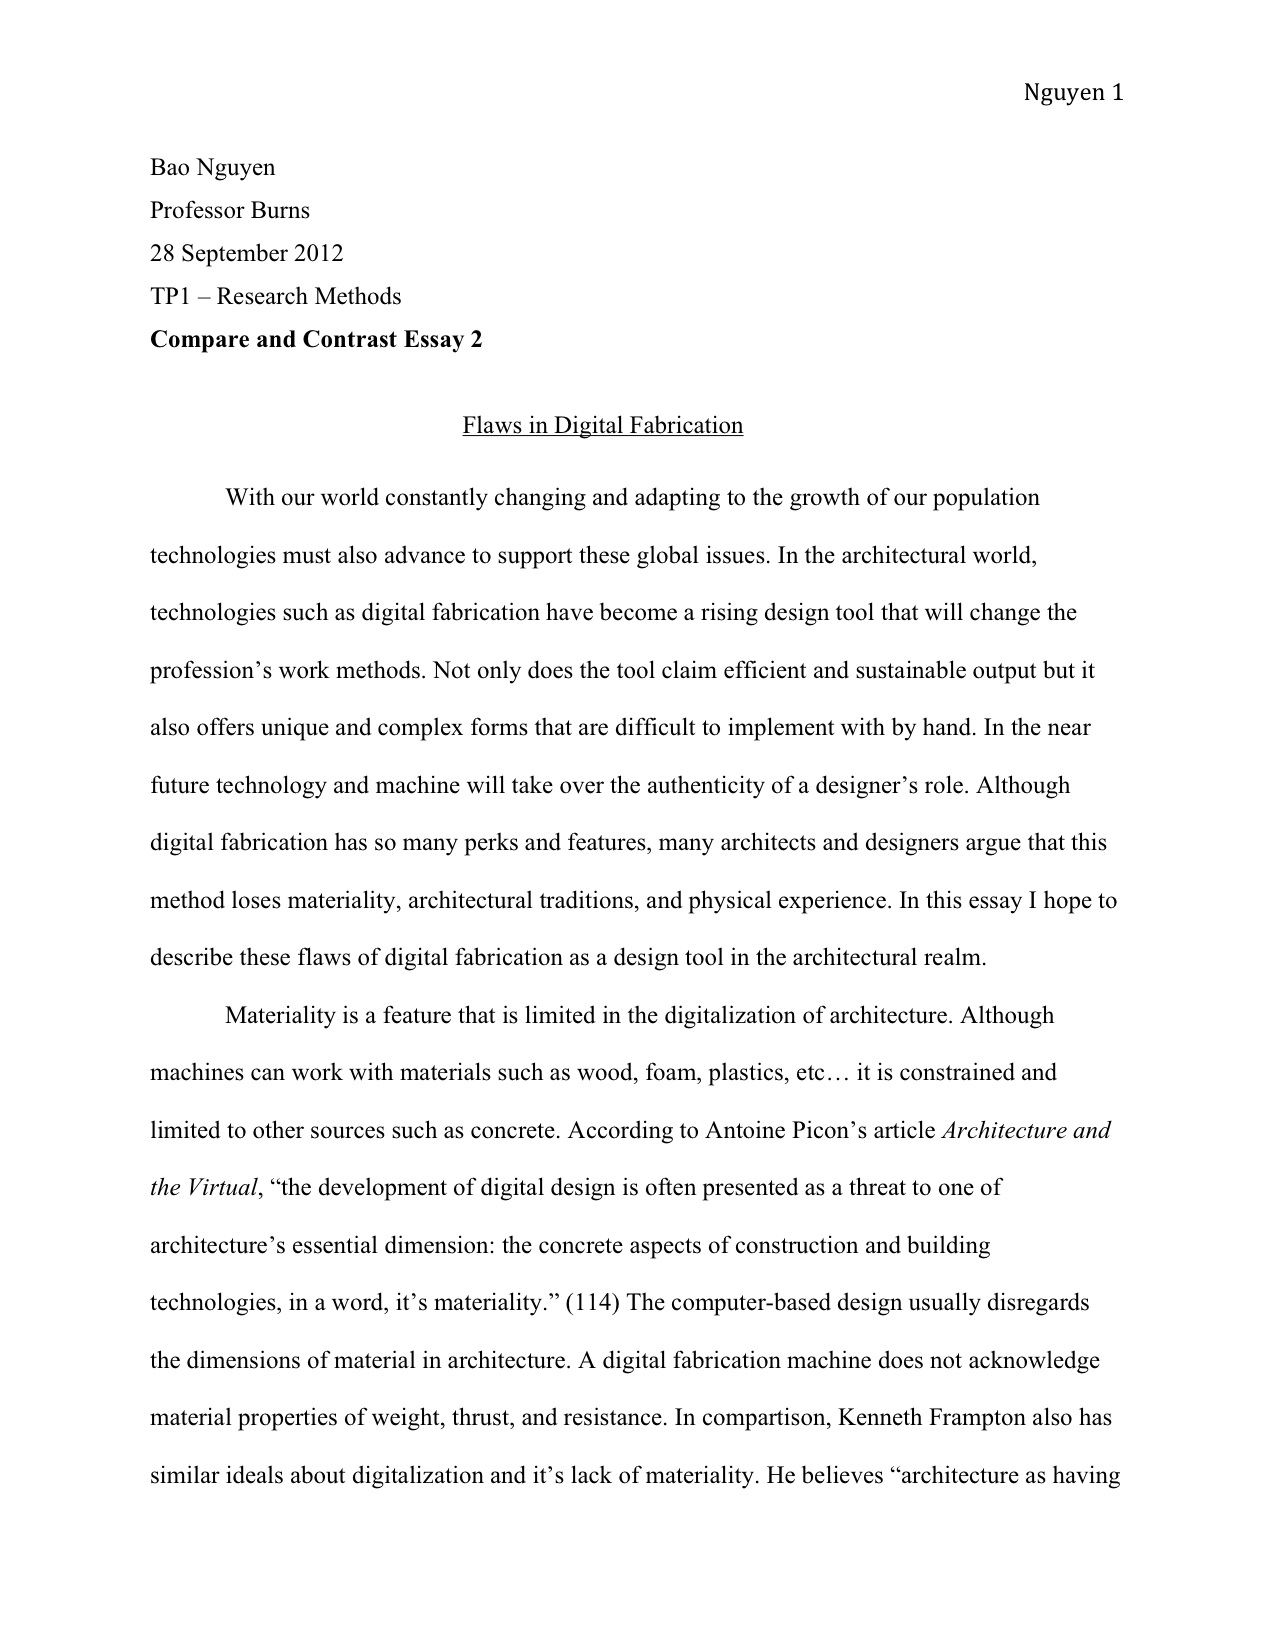 007 Essay Example Good Hooks For Essays Tp1 3 Unforgettable About Gun Control Examples Of Expository Persuasive Full